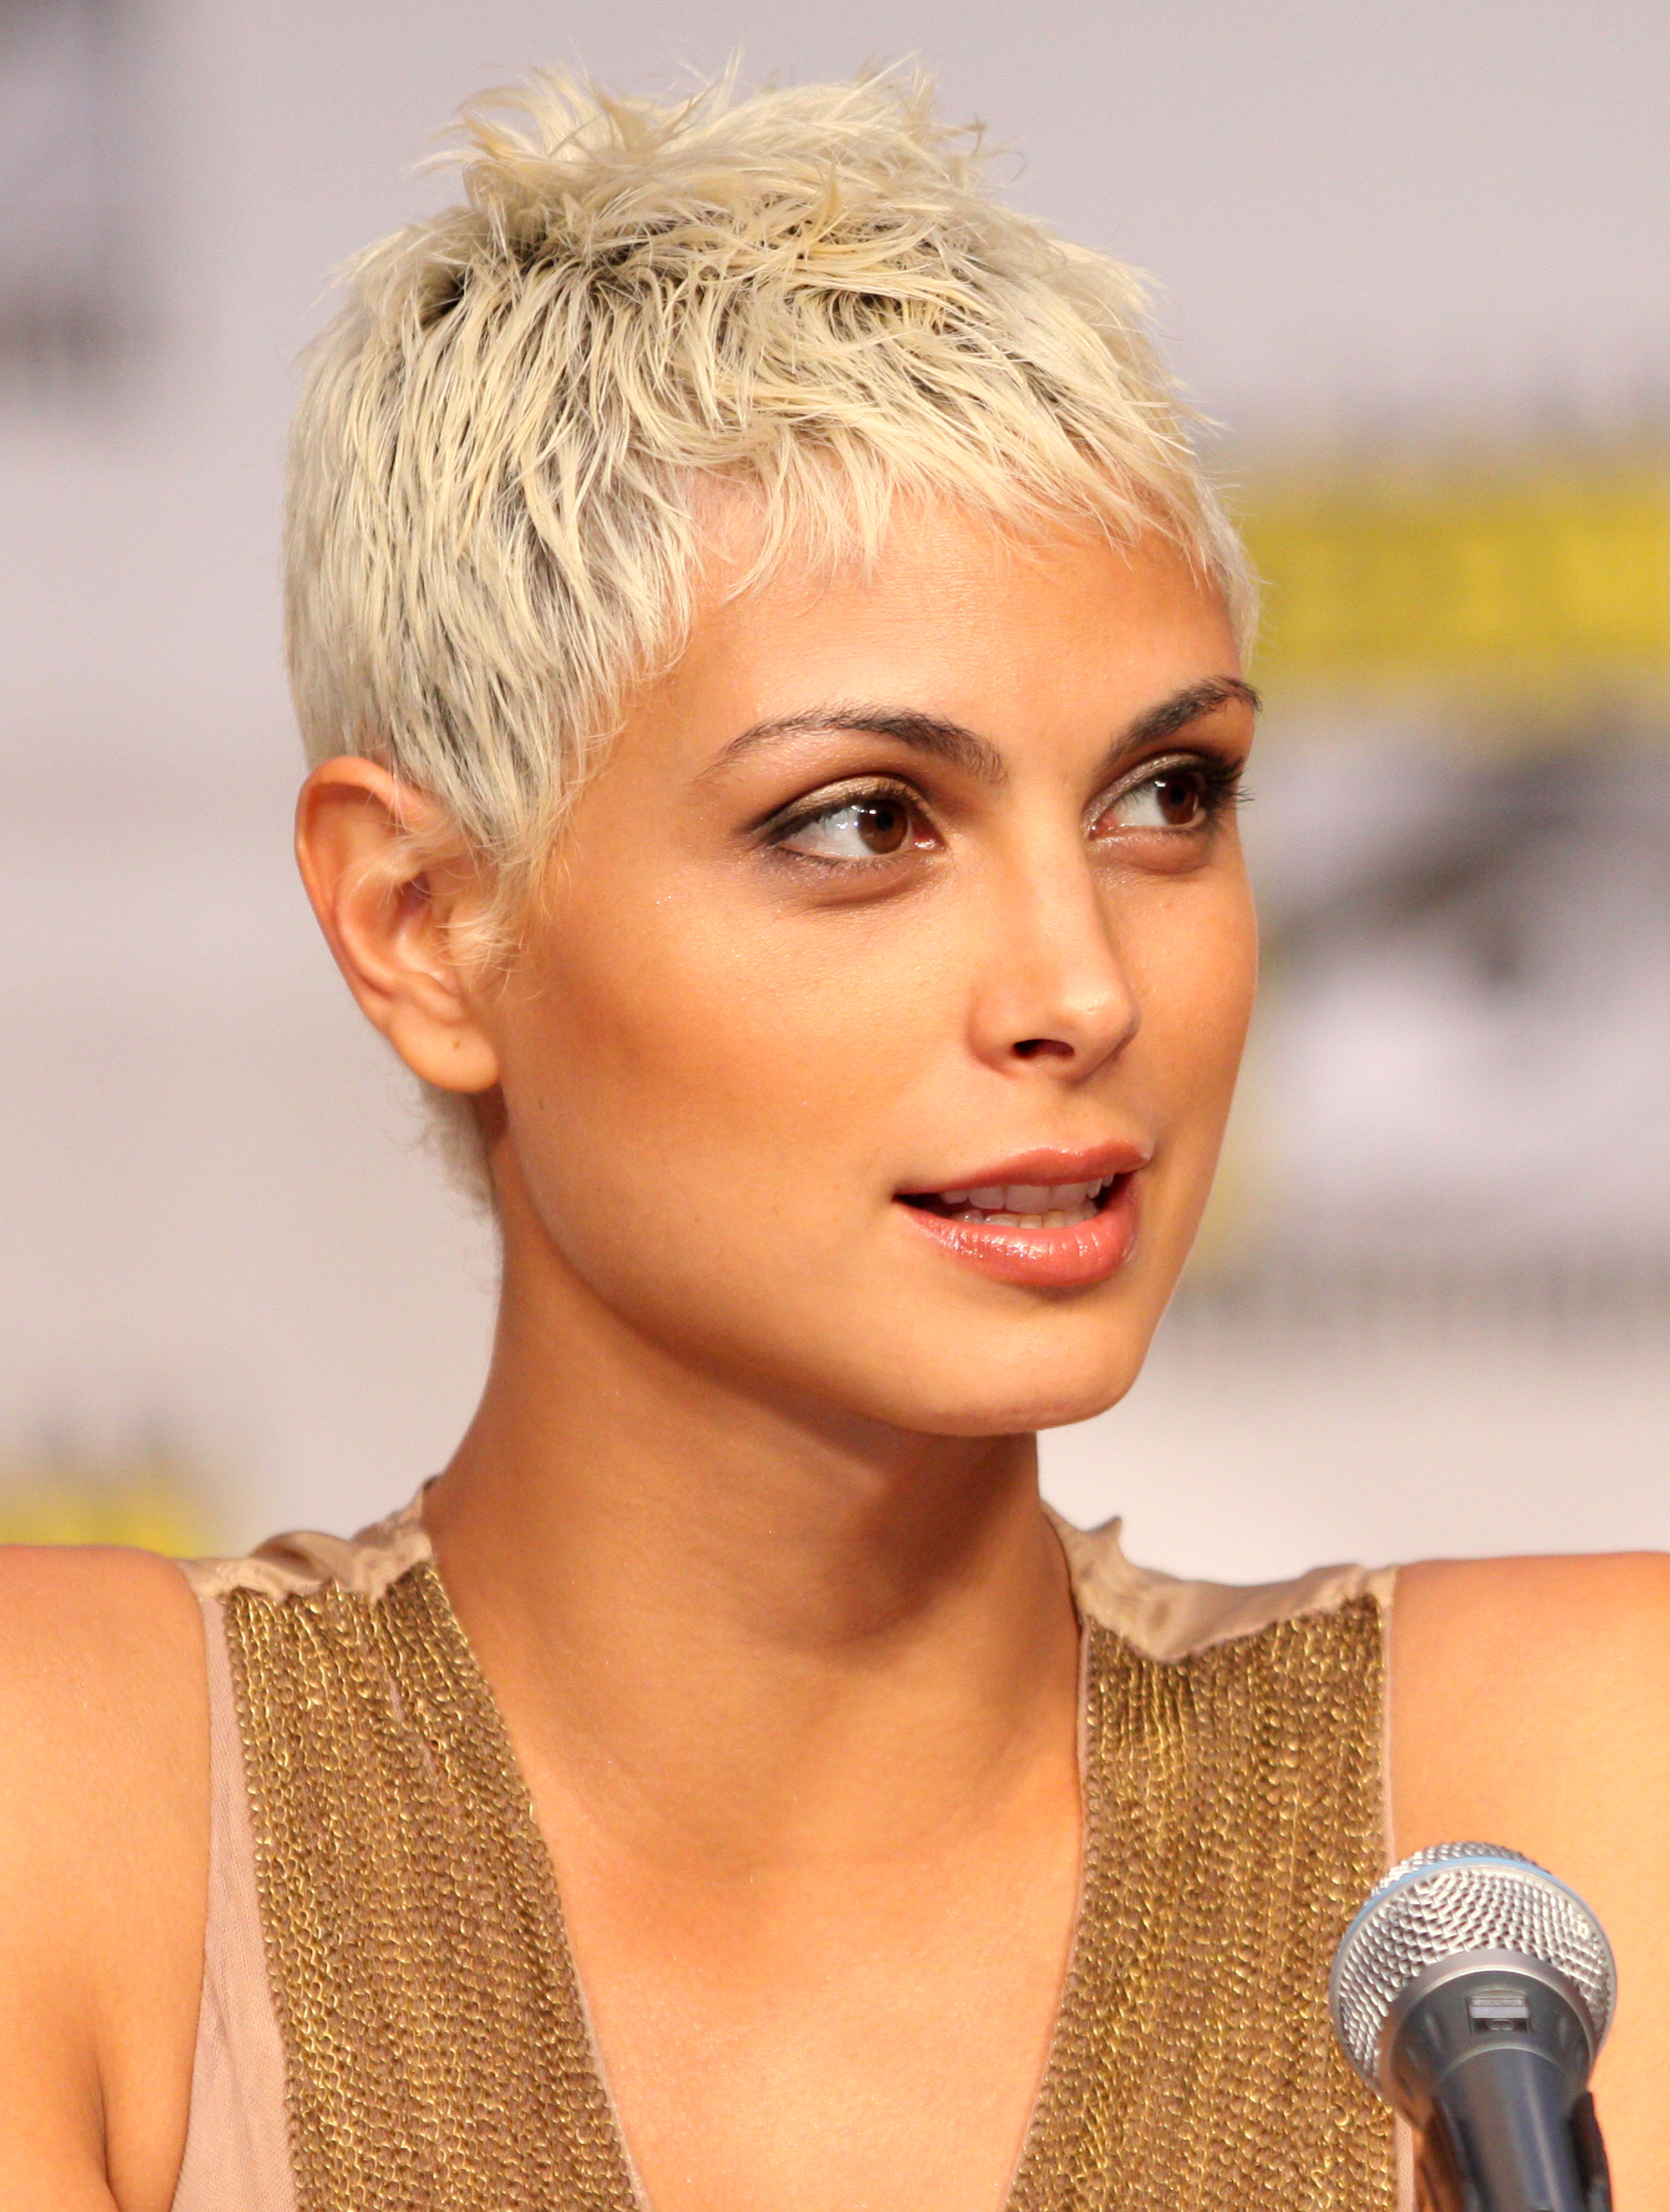 Morena Baccarin earned a  million dollar salary, leaving the net worth at 2 million in 2017